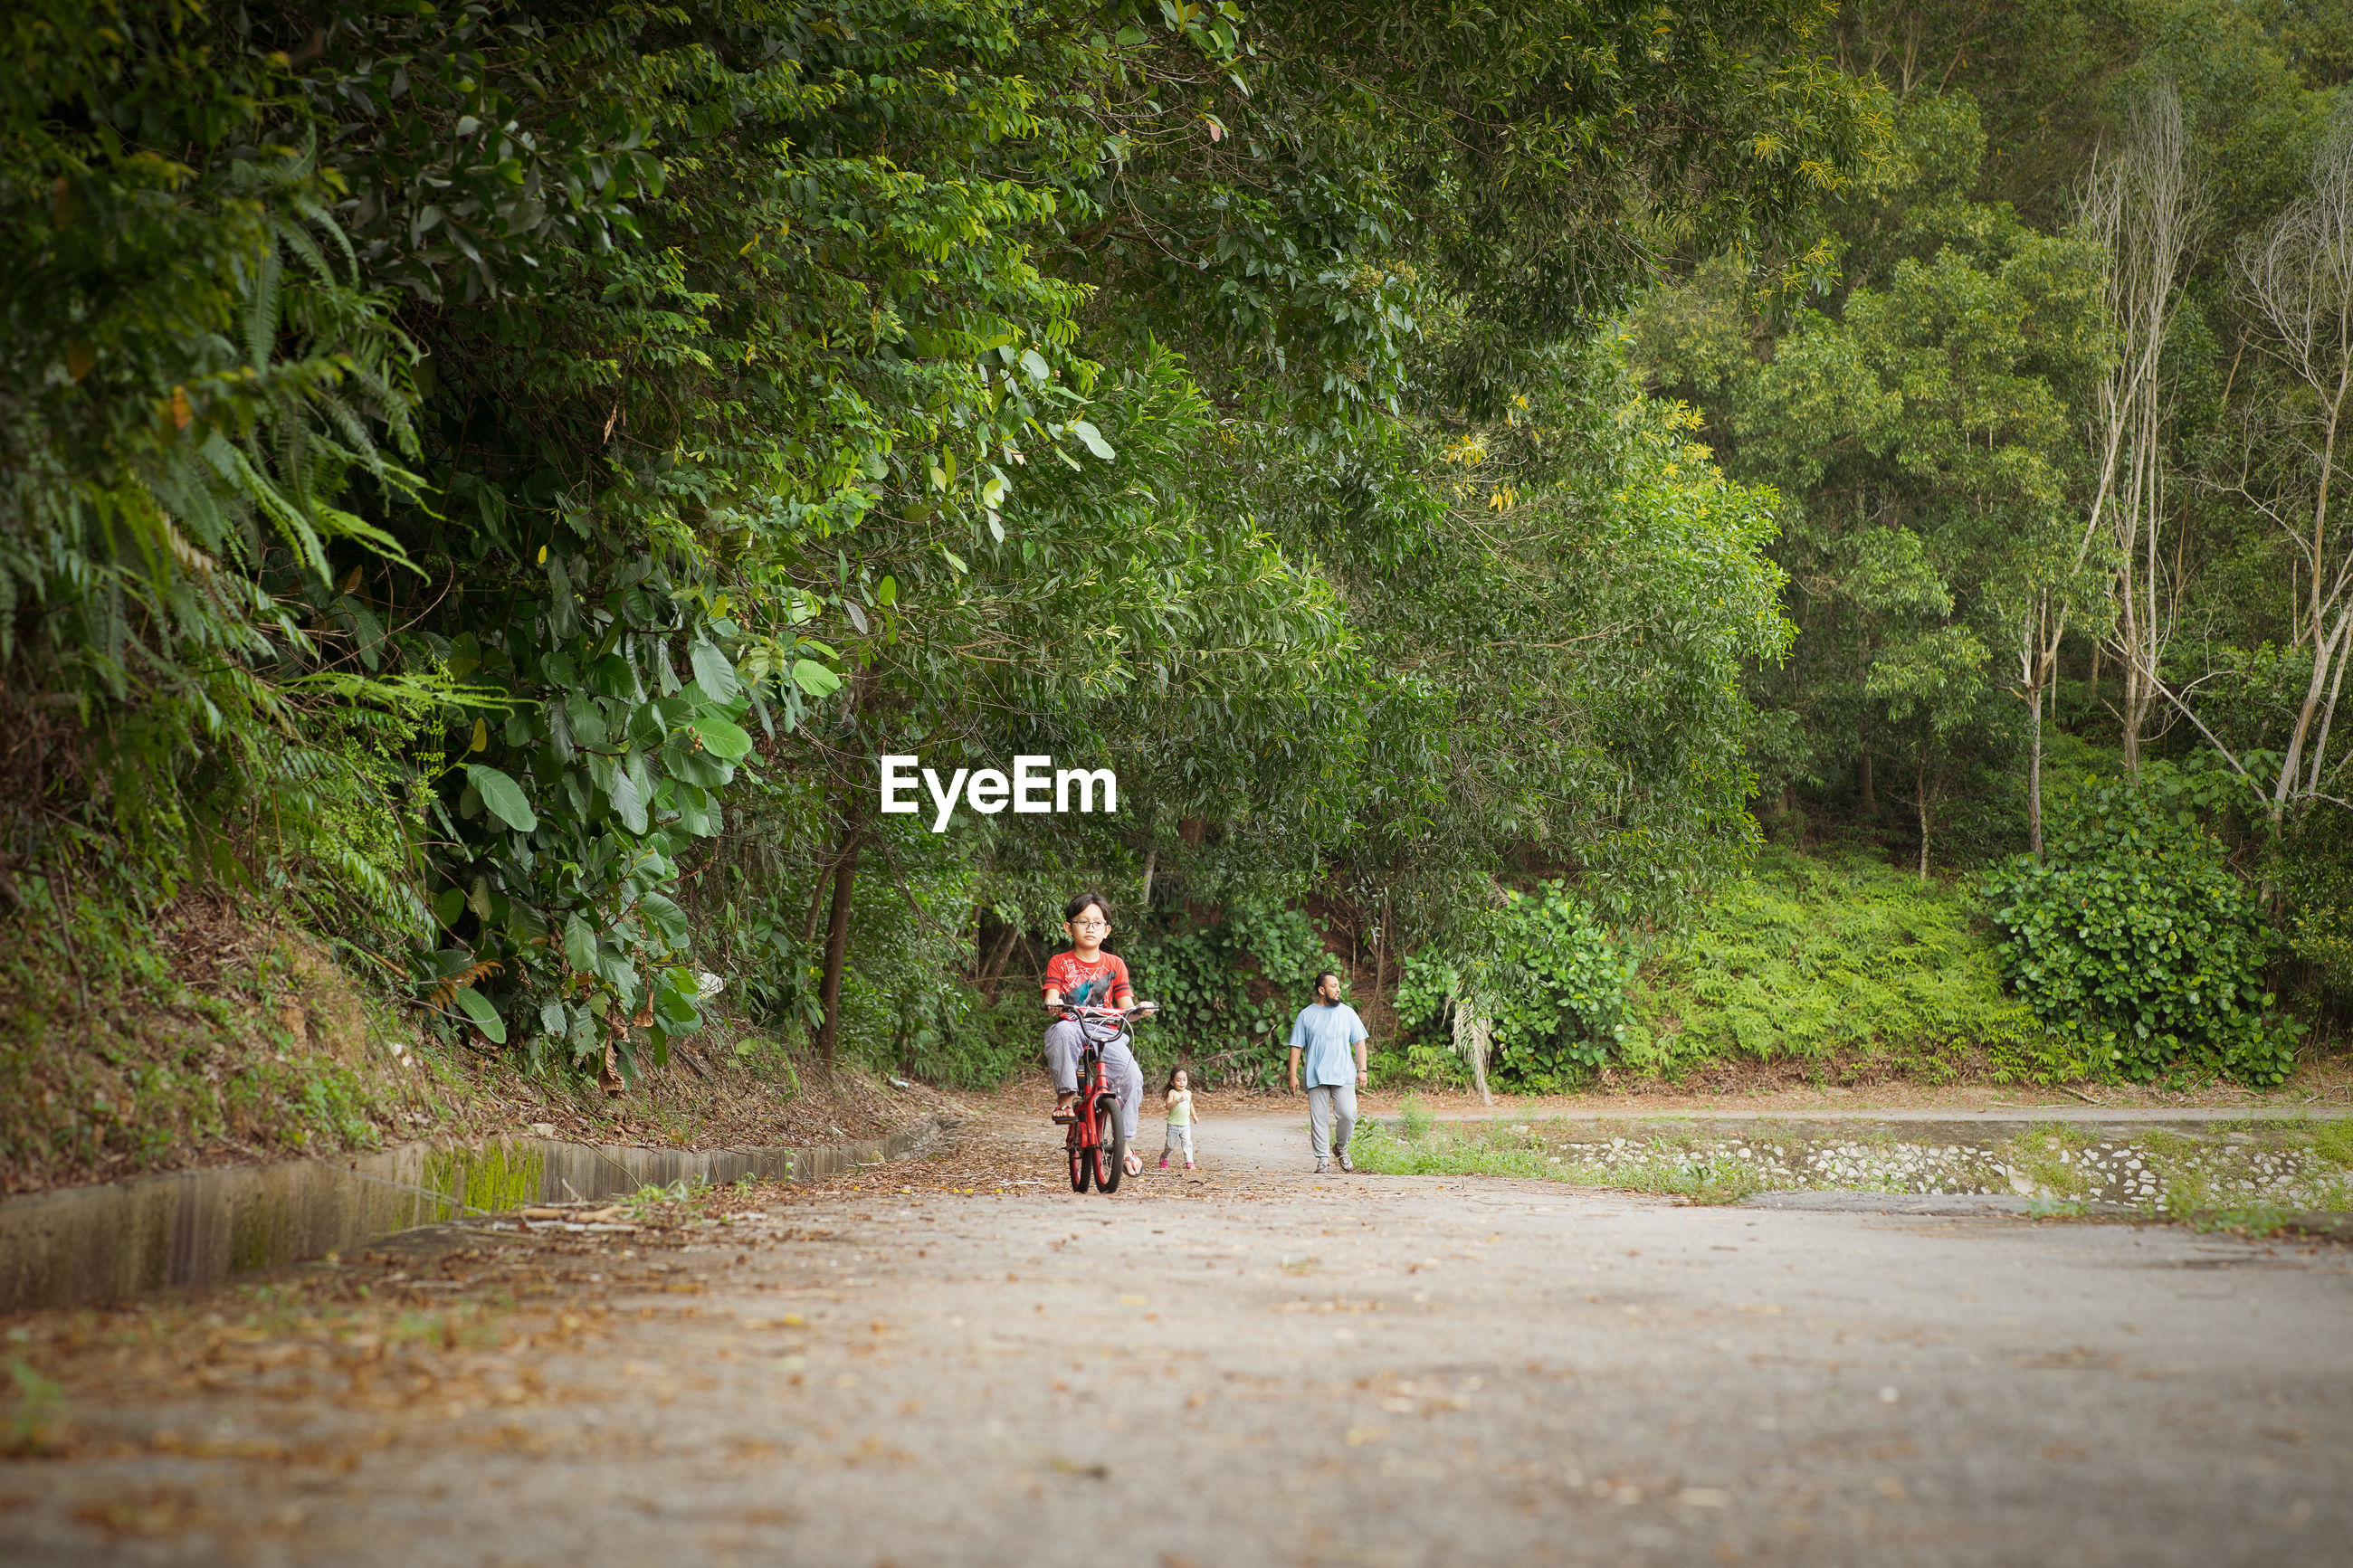 REAR VIEW OF TWO PEOPLE ON ROAD AGAINST TREES